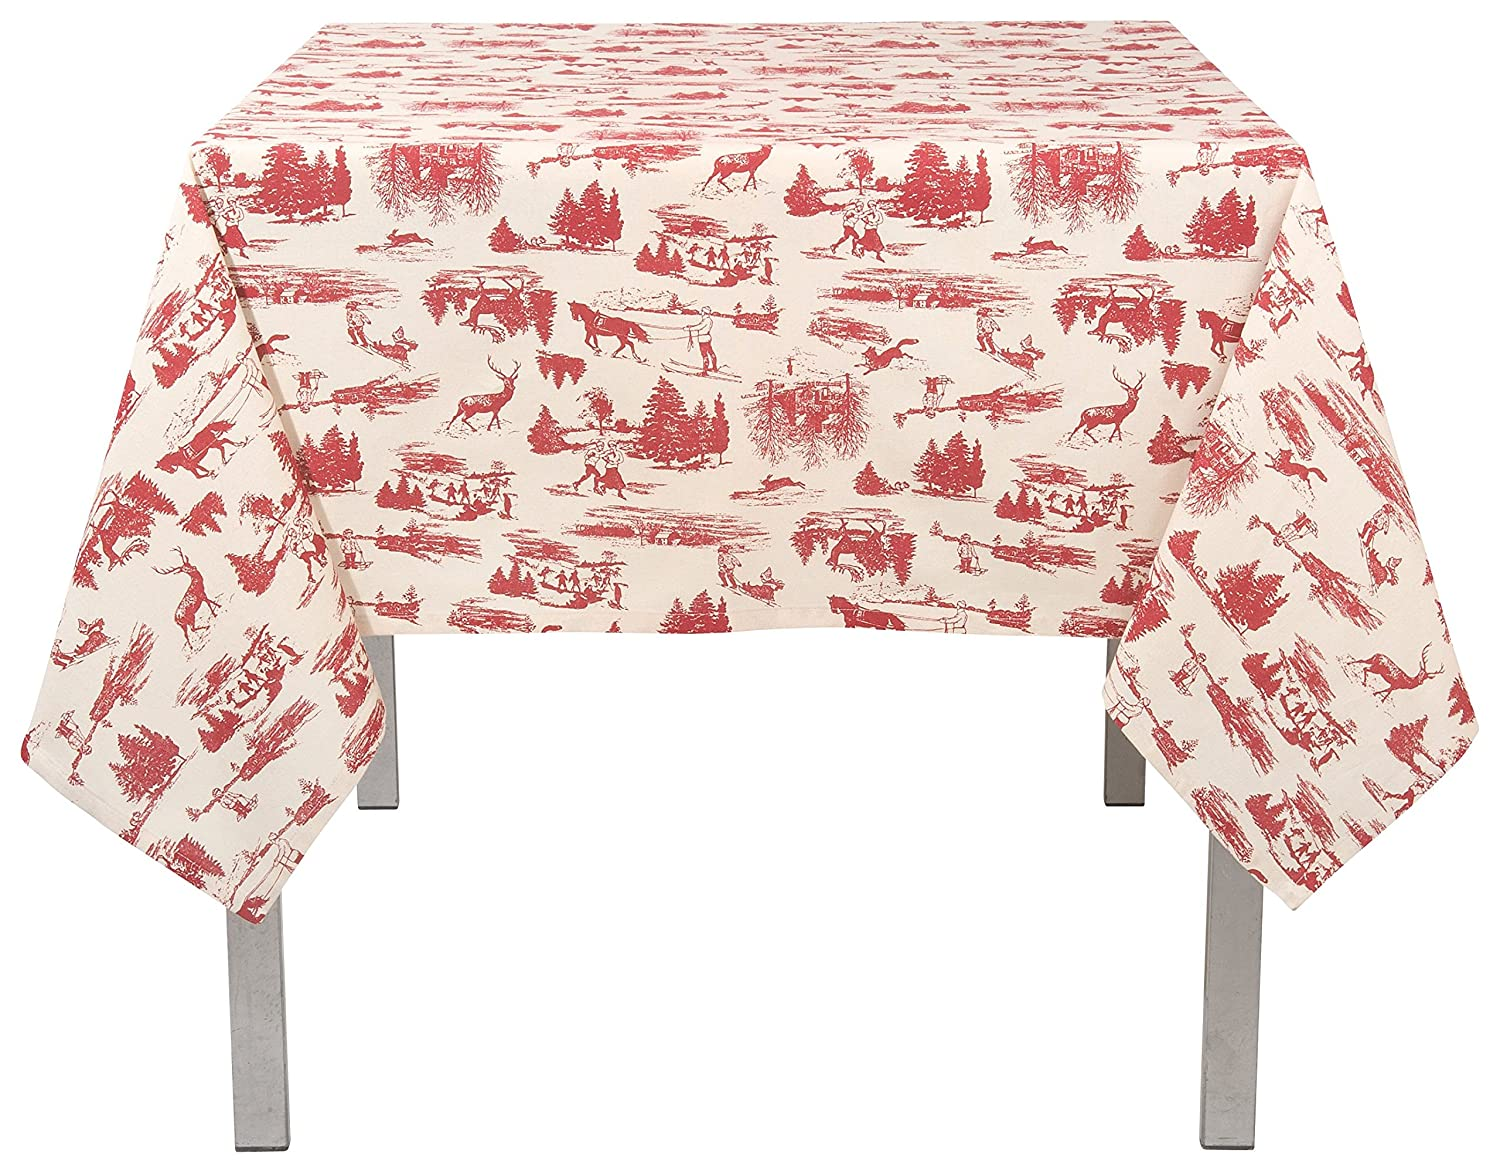 Christmas Tablescape Décor - Christmas holiday red and white toile print rectangle cotton tablecloth